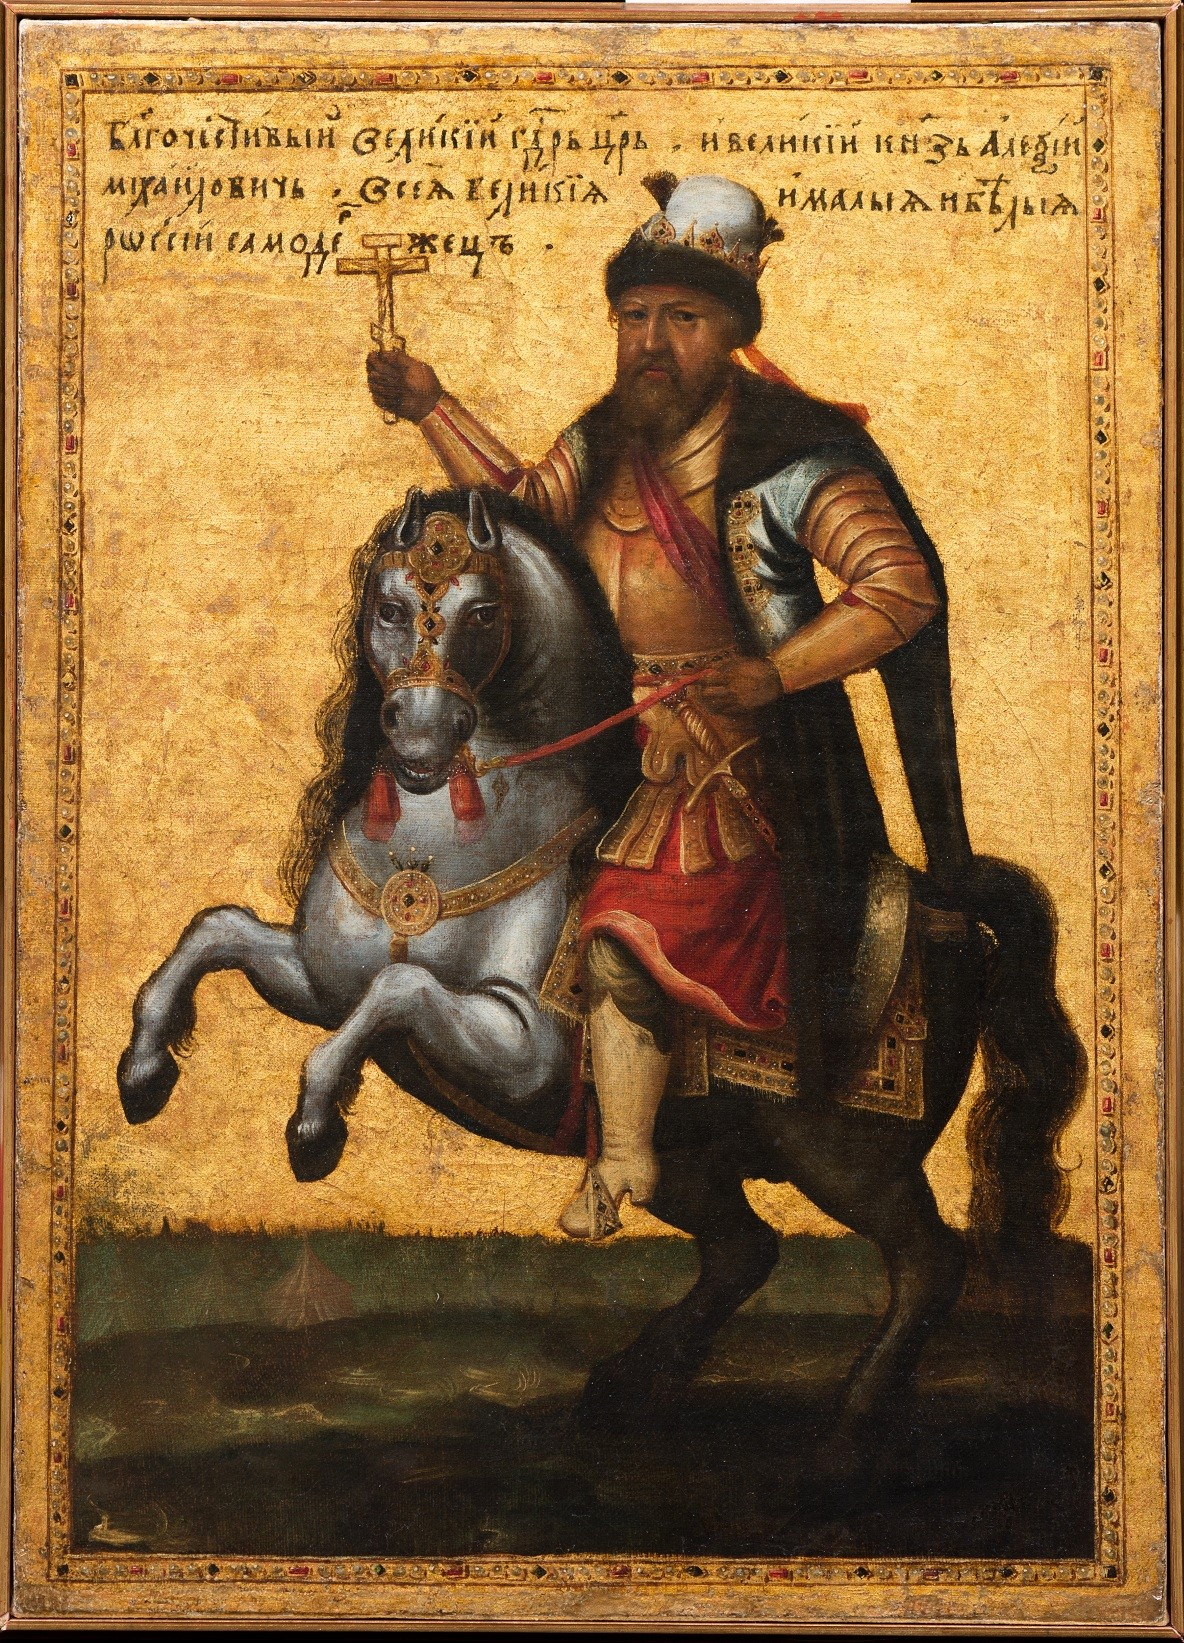 Alexis I of Russia,cr.1675-85, unknown